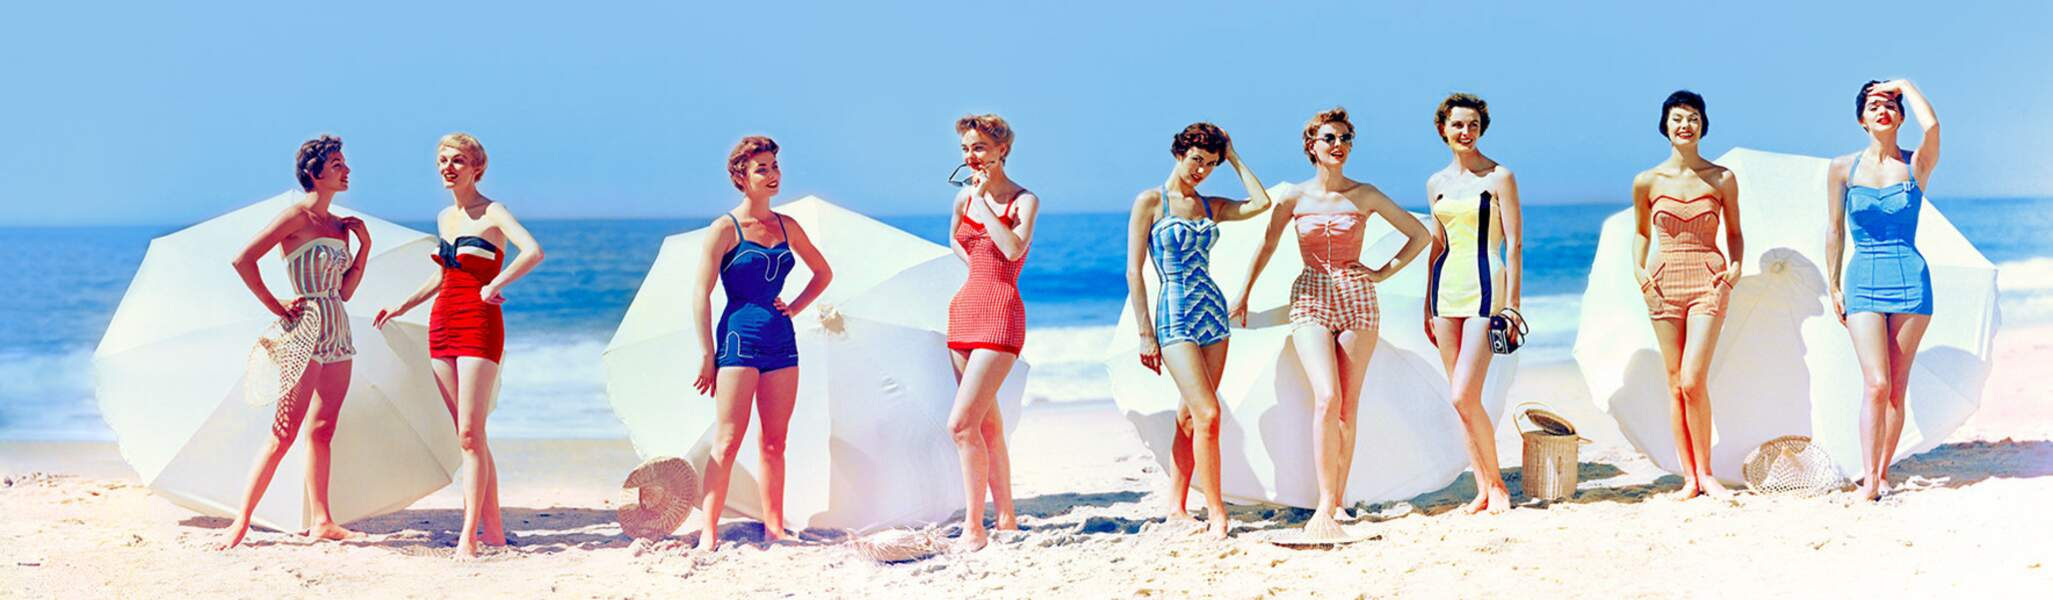 Fashions In Chromspun Swimsuits, 1954